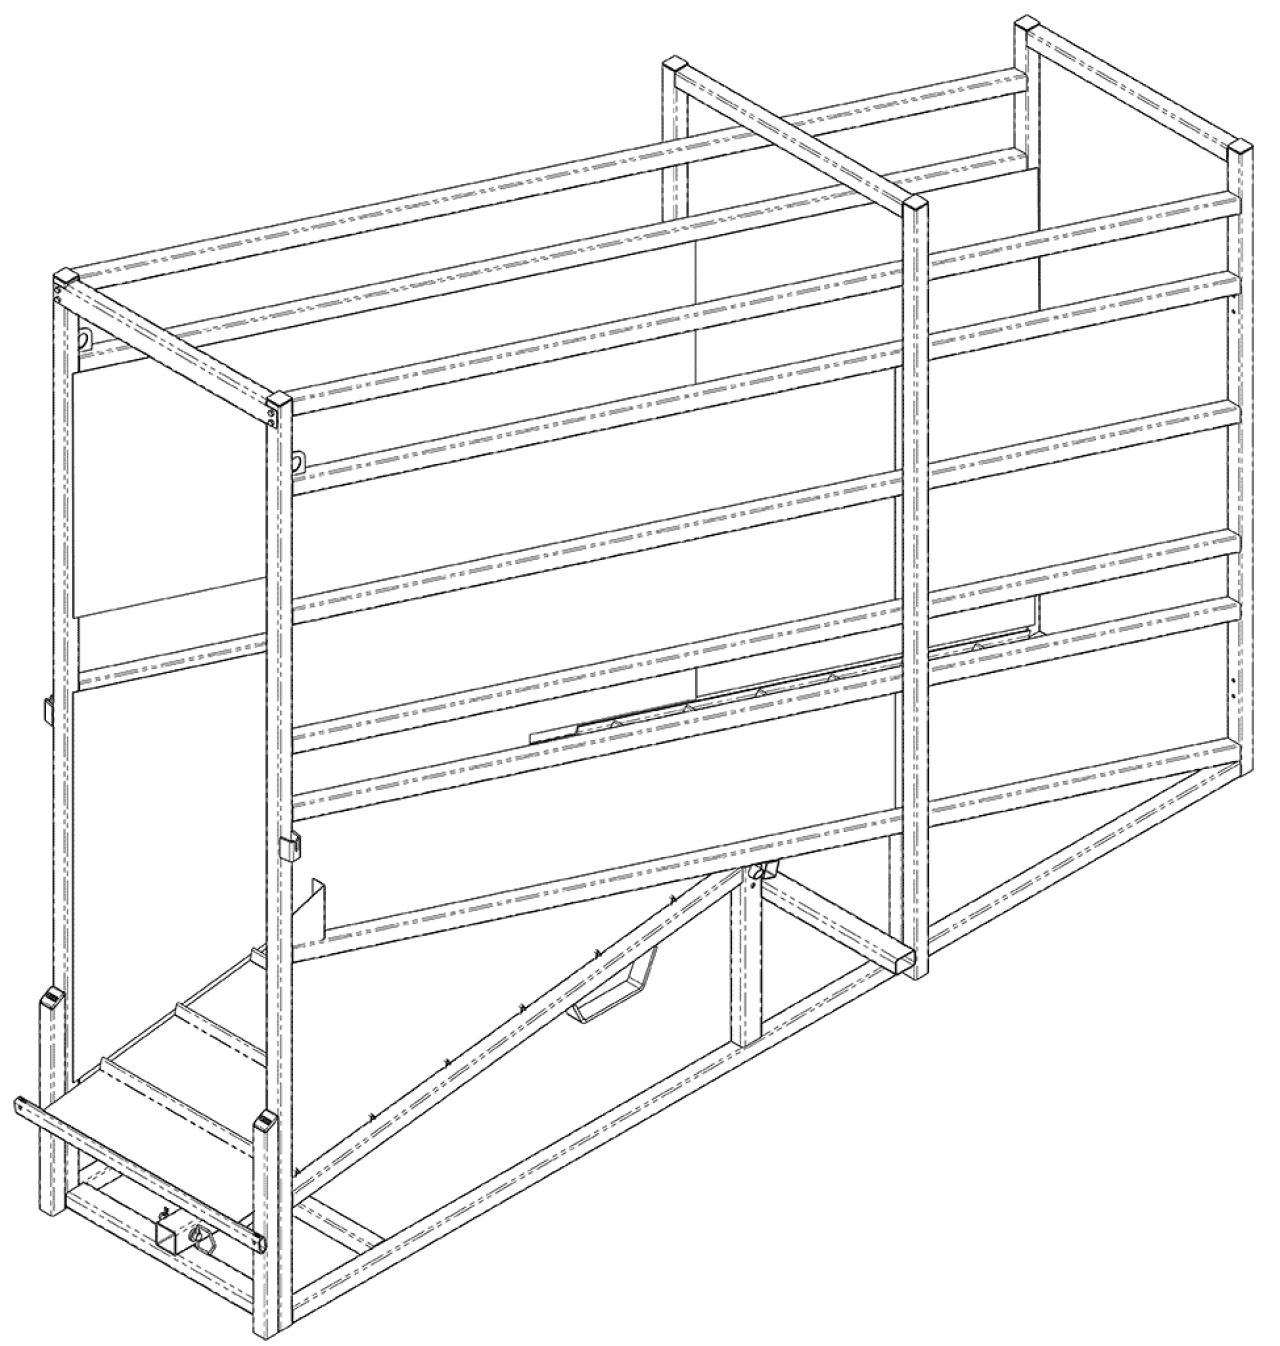 Stationary Cattle Loading Chute | CAD Drawing Cattle Sorting | Arrowquip Cattle Equipment